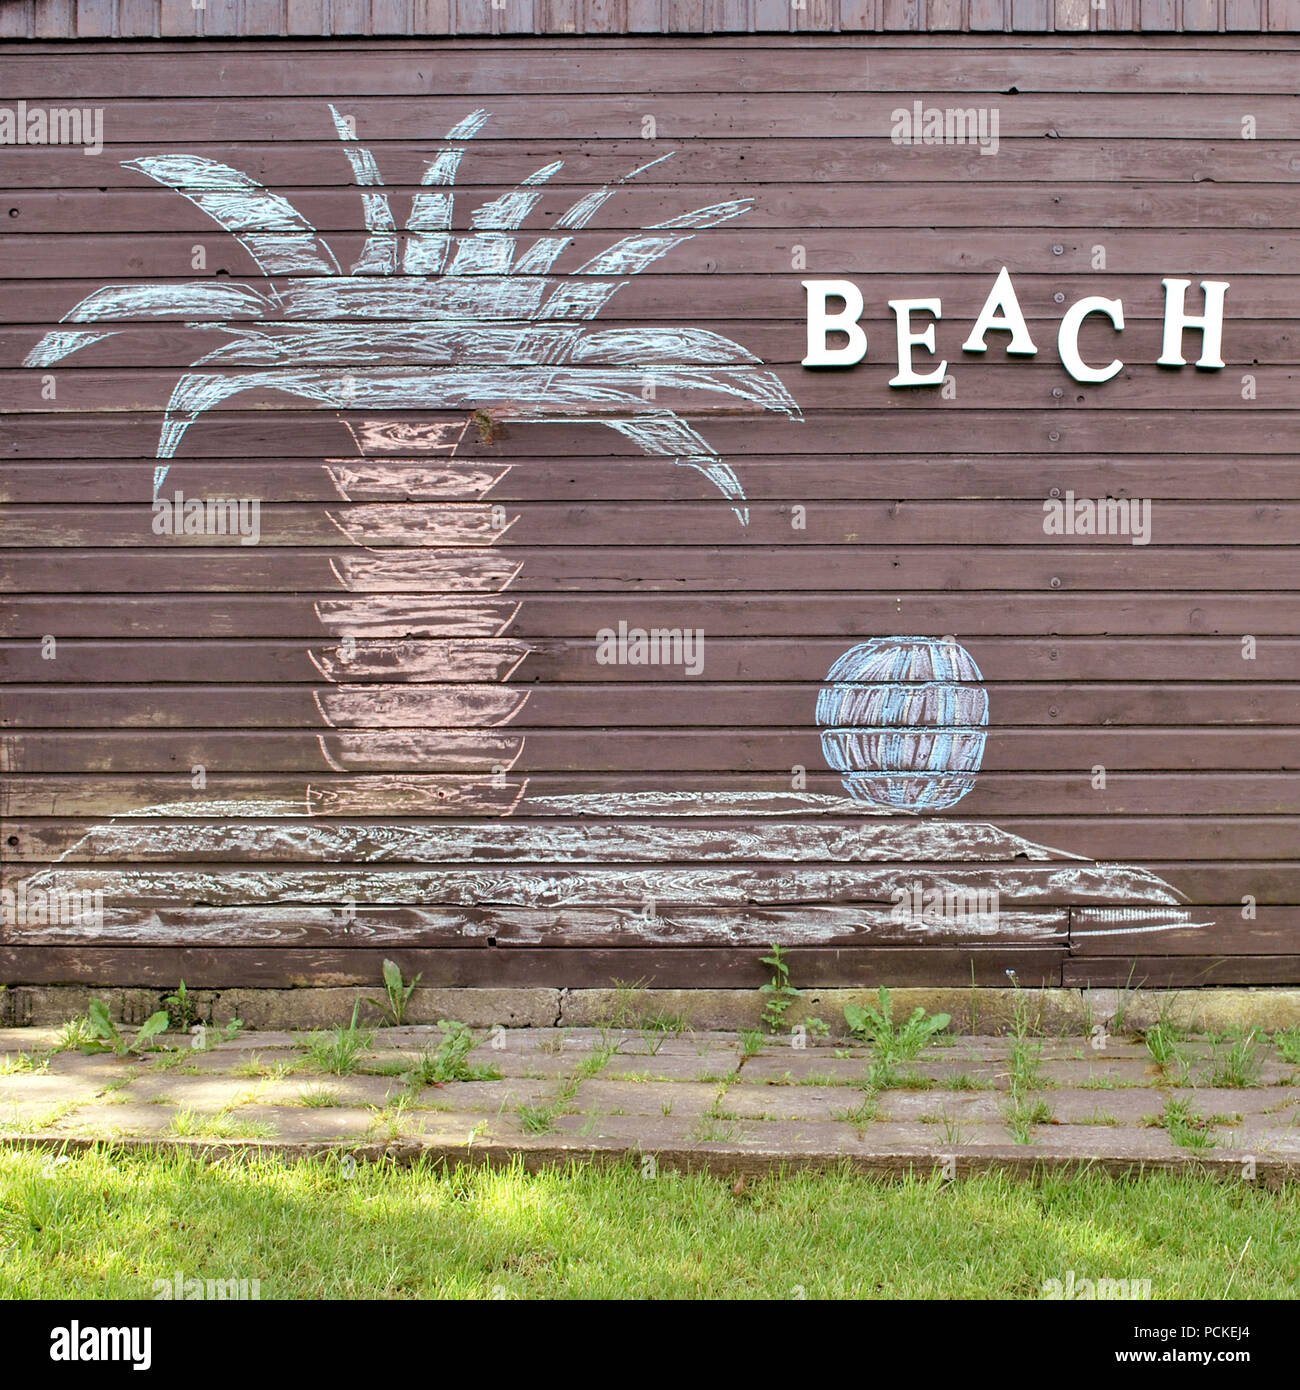 beach,child's drawing,chalk drawing - Stock Image